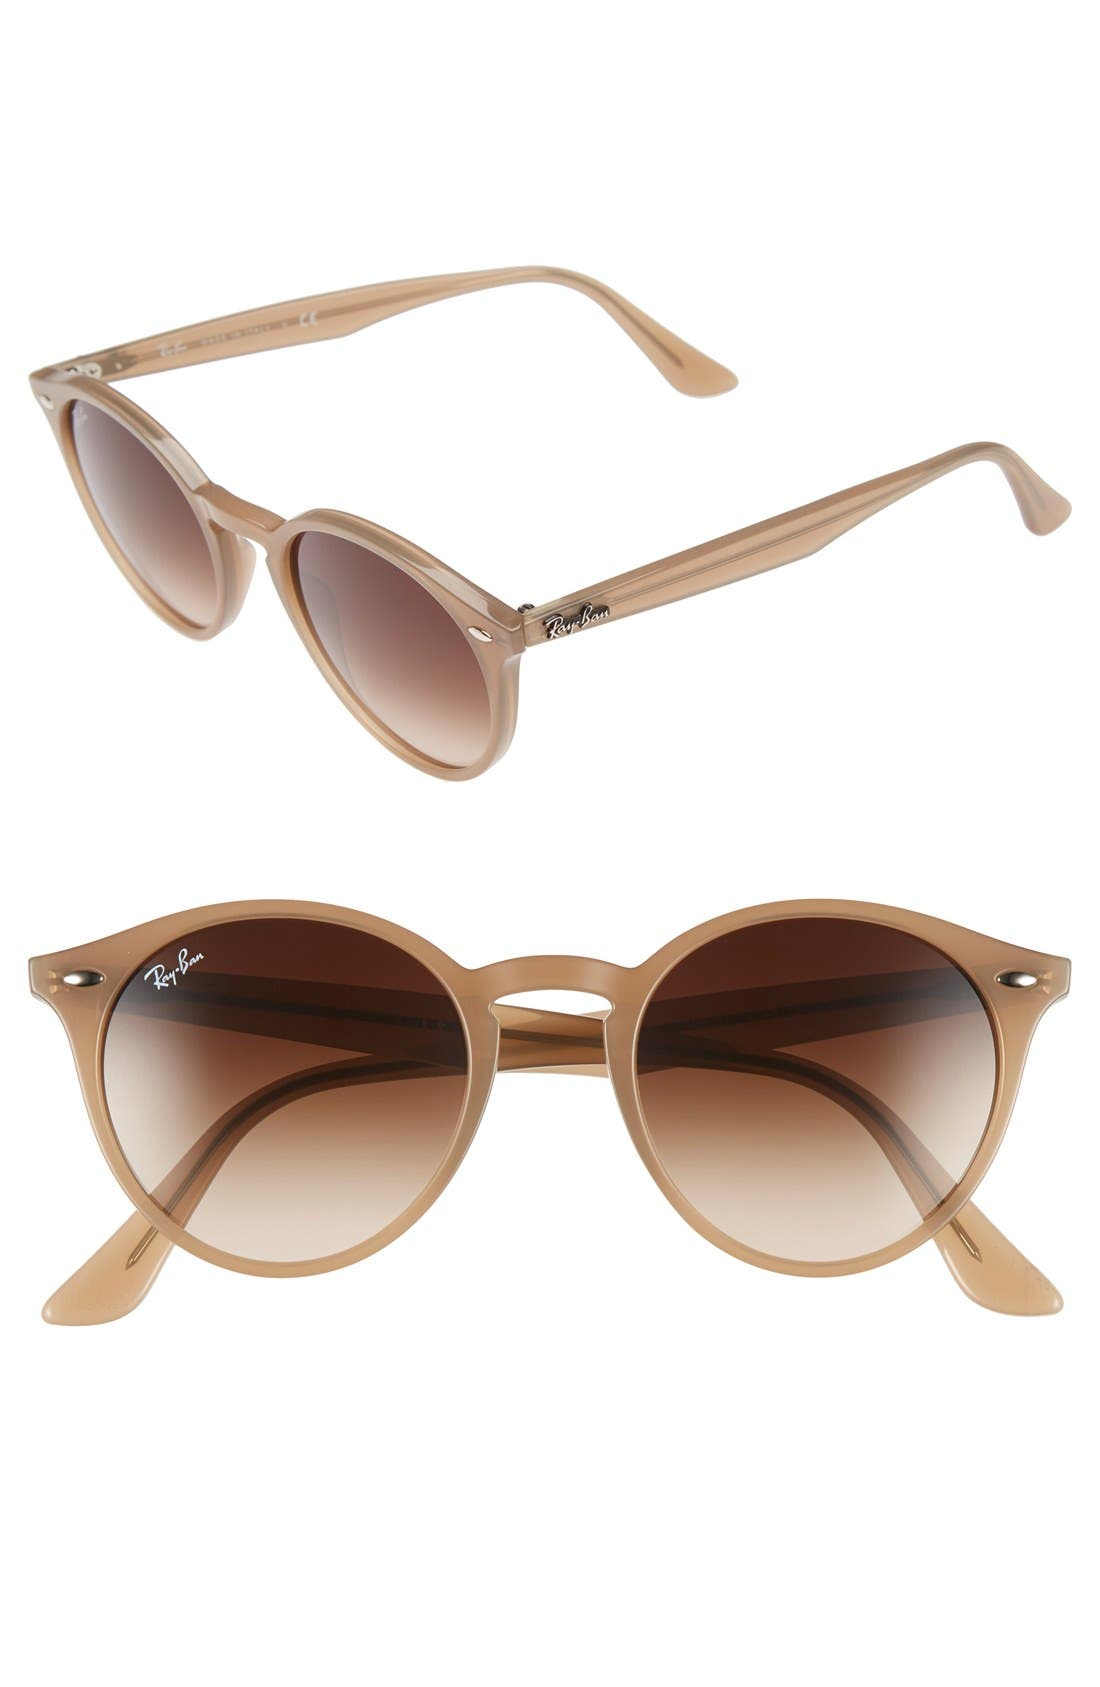 Highstreet 51mm Round Sunglasses,                             Main thumbnail 5, color,